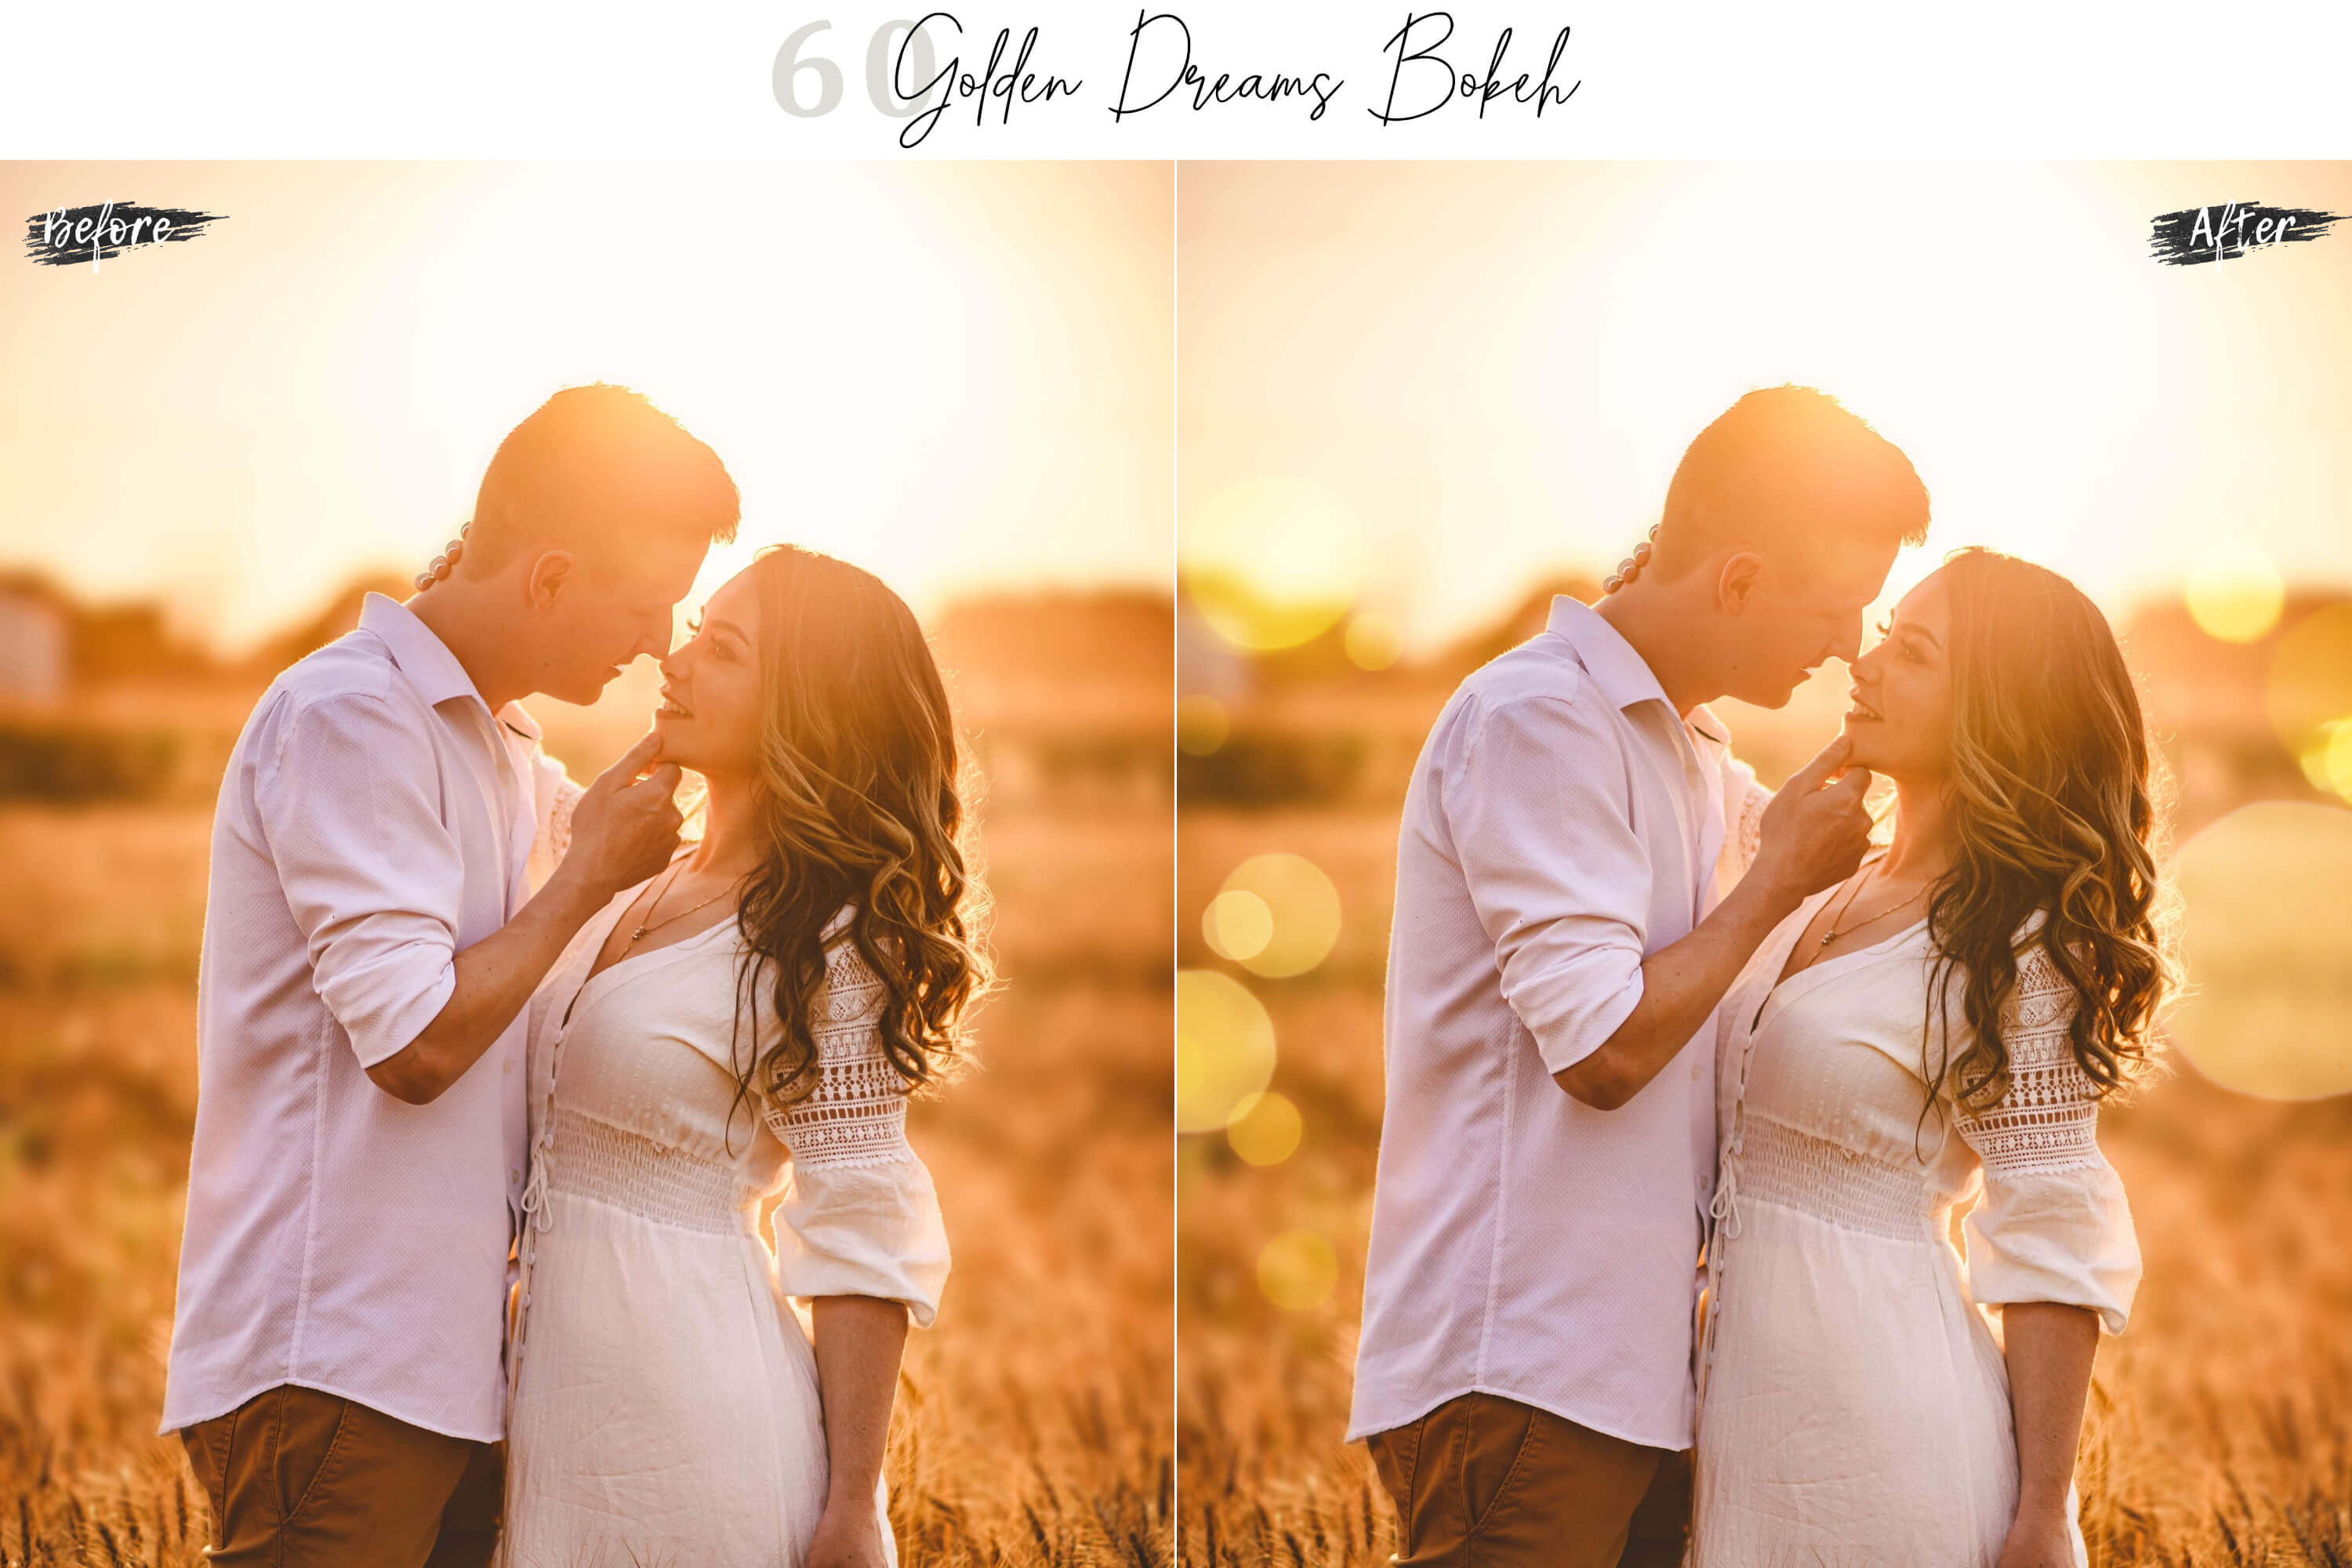 60 Golden Dreams Bokeh lights Effect Photo Overlay example image 3